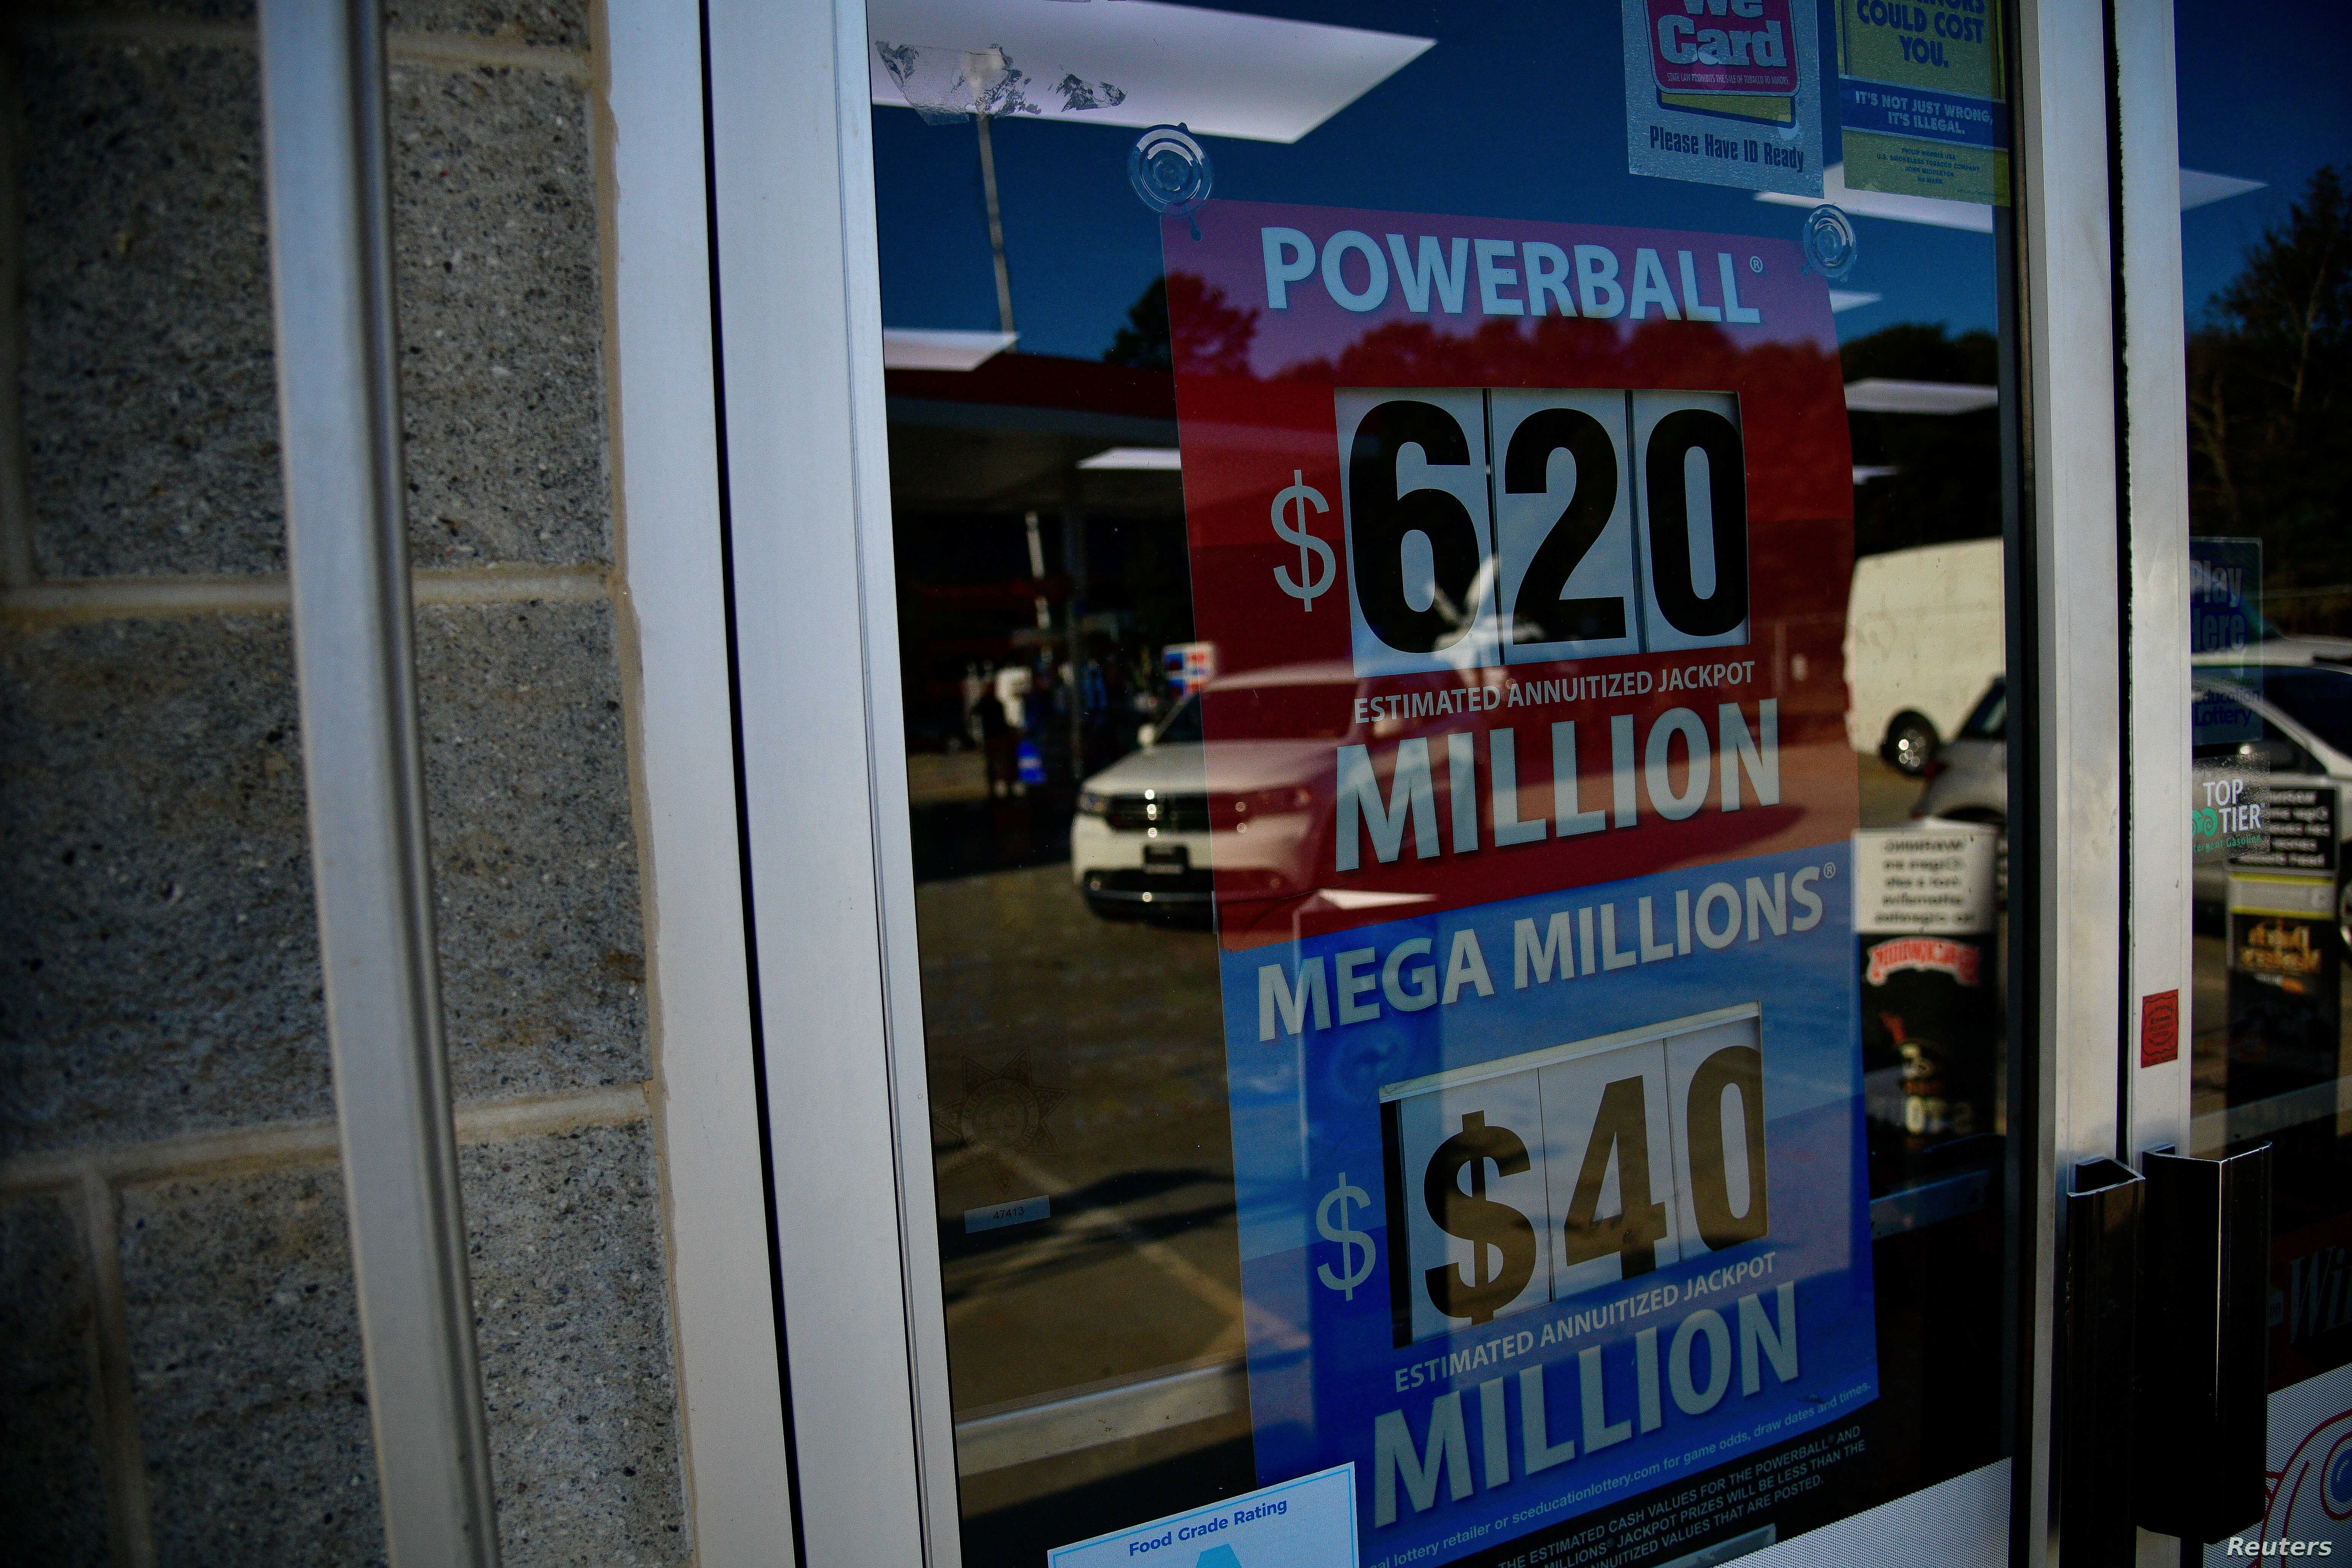 At Least Two Winning Powerball Tickets Sold | Voice of